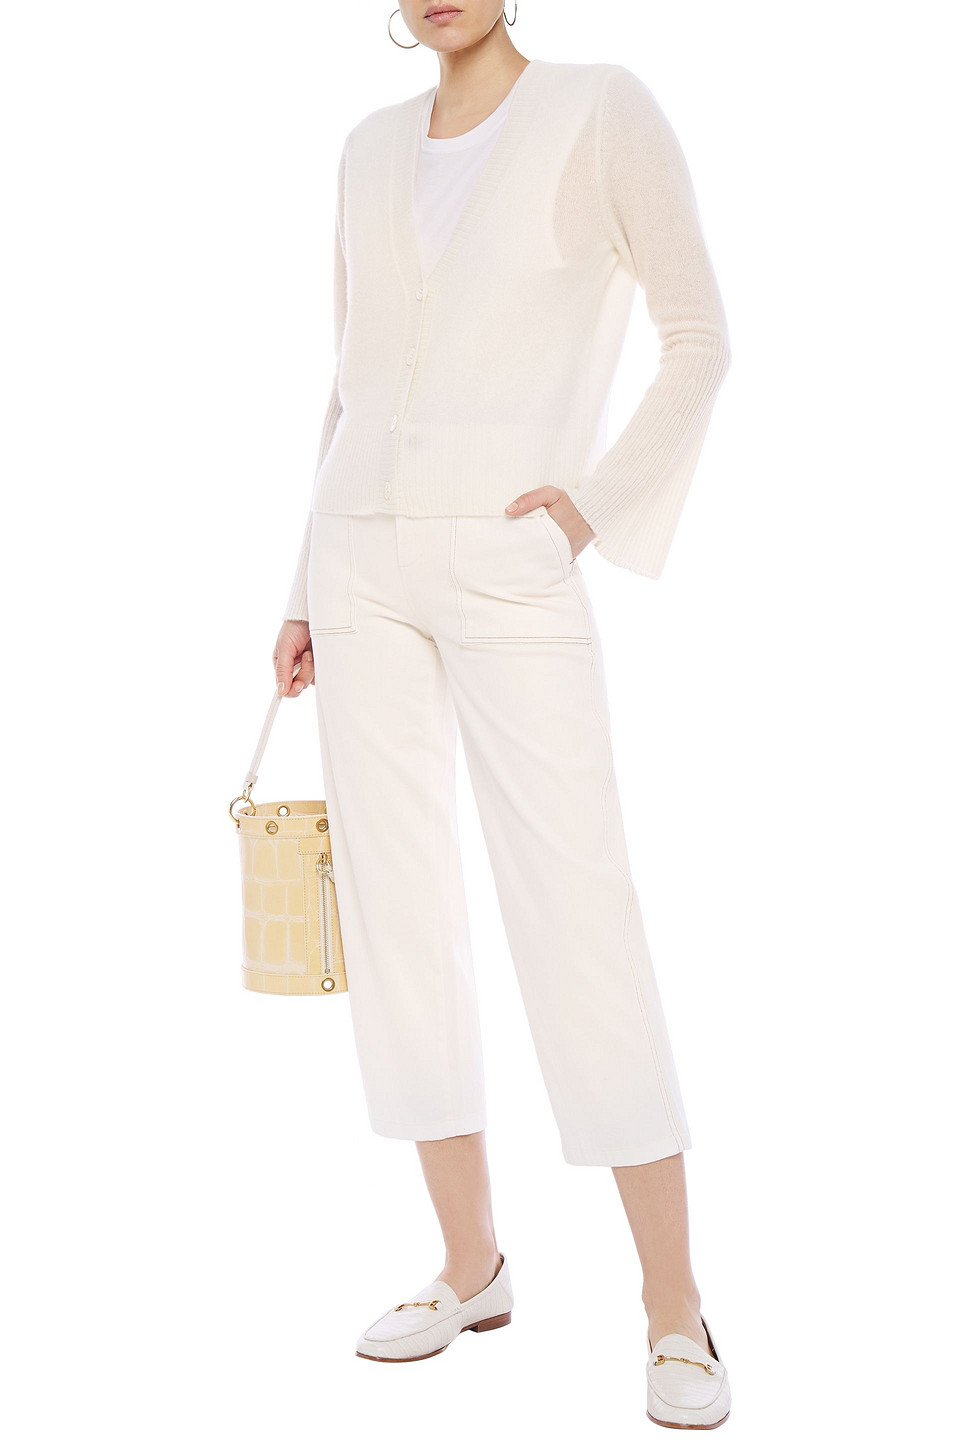 Charli | Charli Woman Cindy Cashmere Cardigan Ivory | Clouty